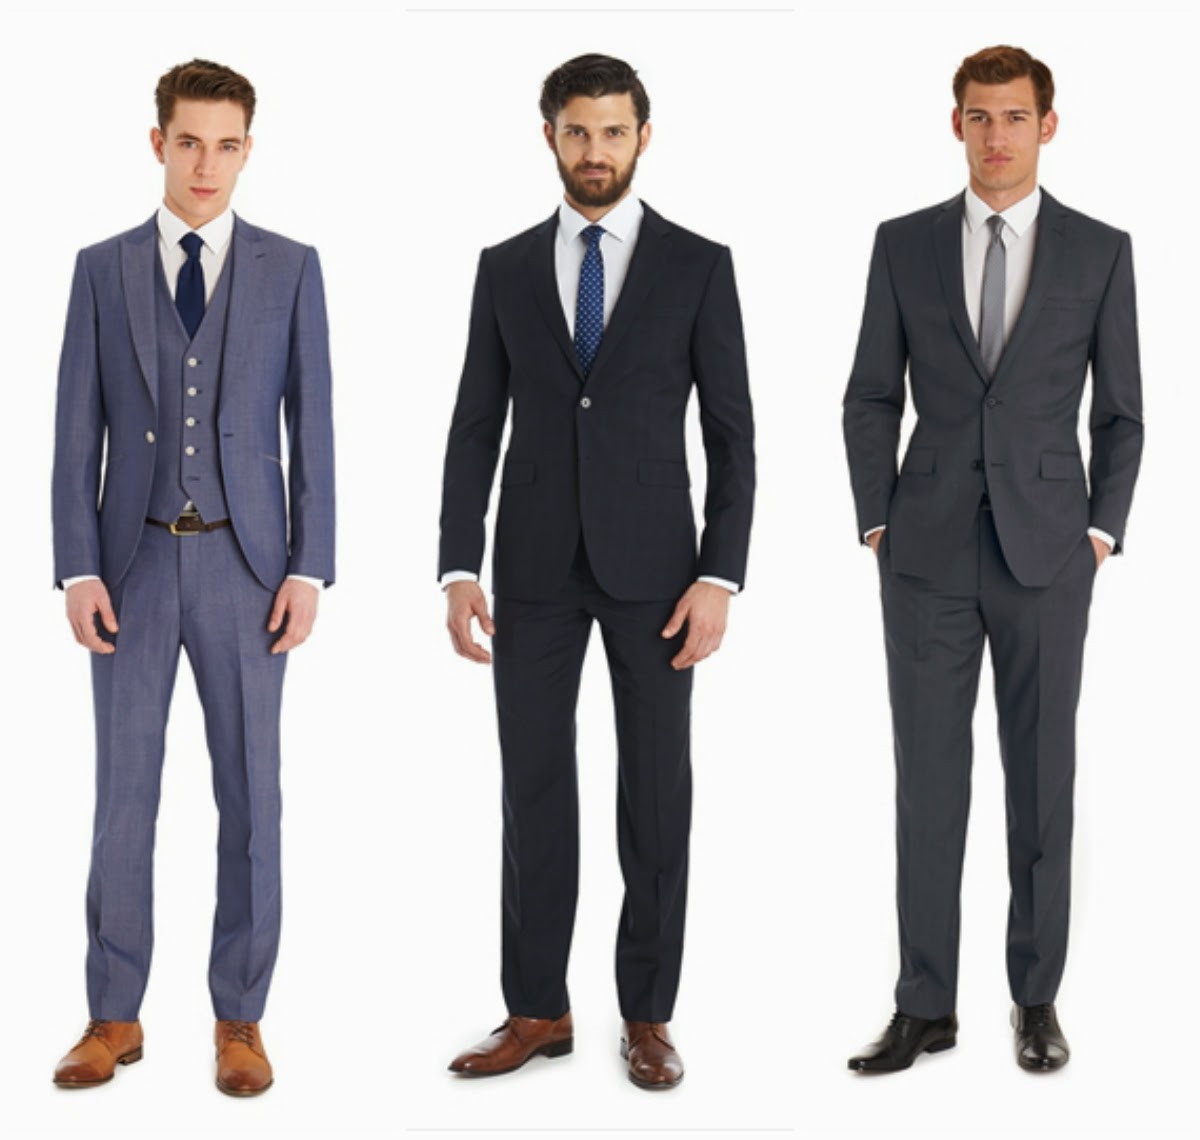 Chap Chat - Accessorising a plain suit | That Dapper Chap